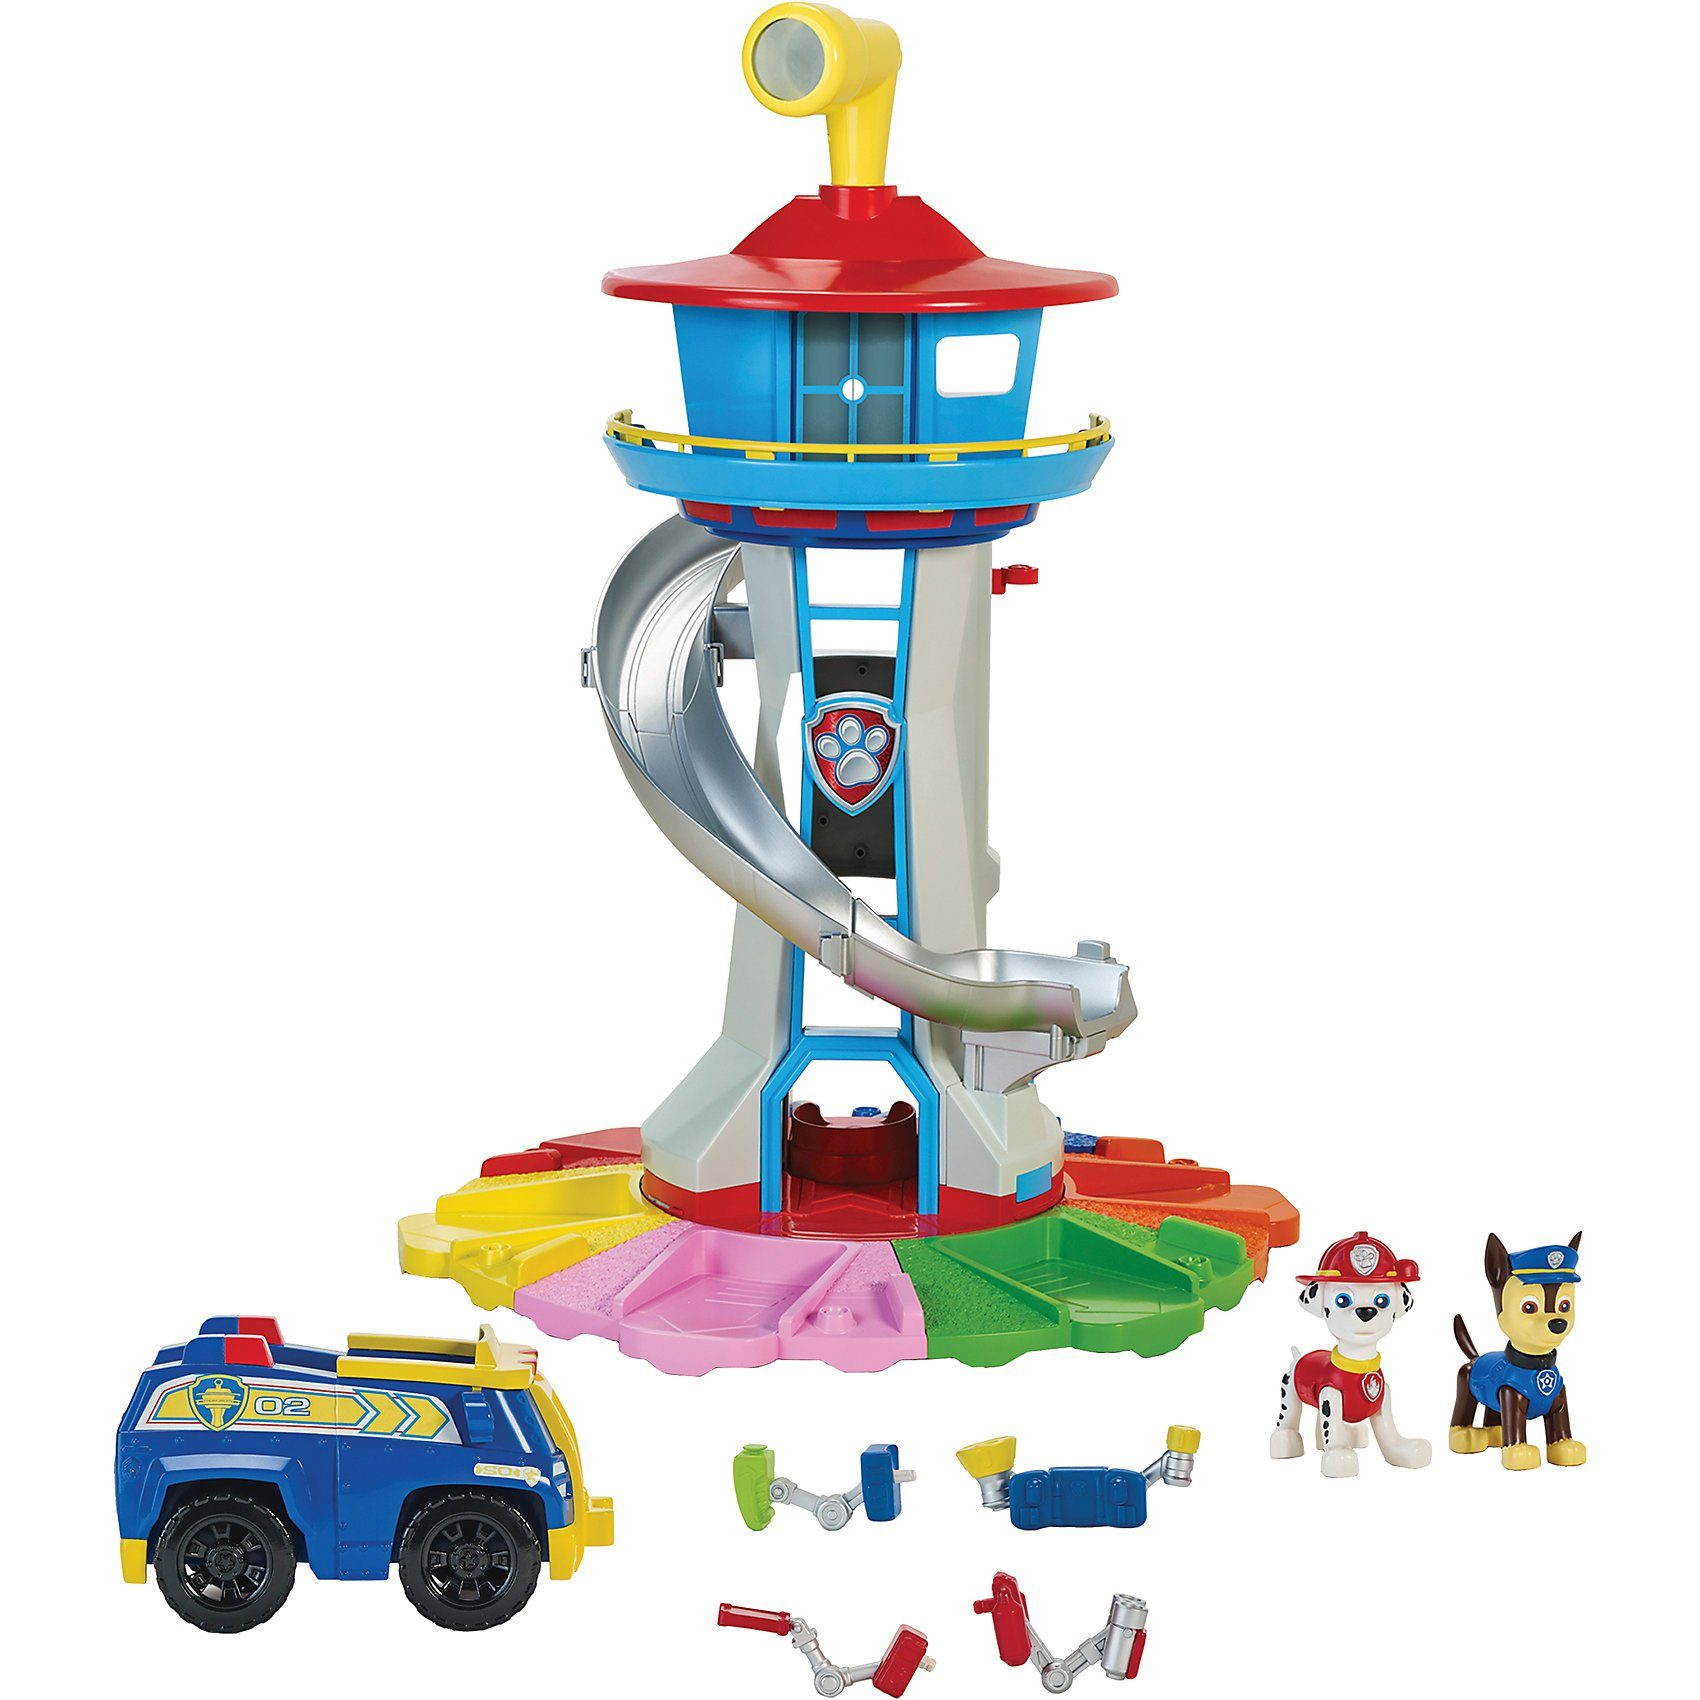 Spin Master Life Size Look Out Tower Playset